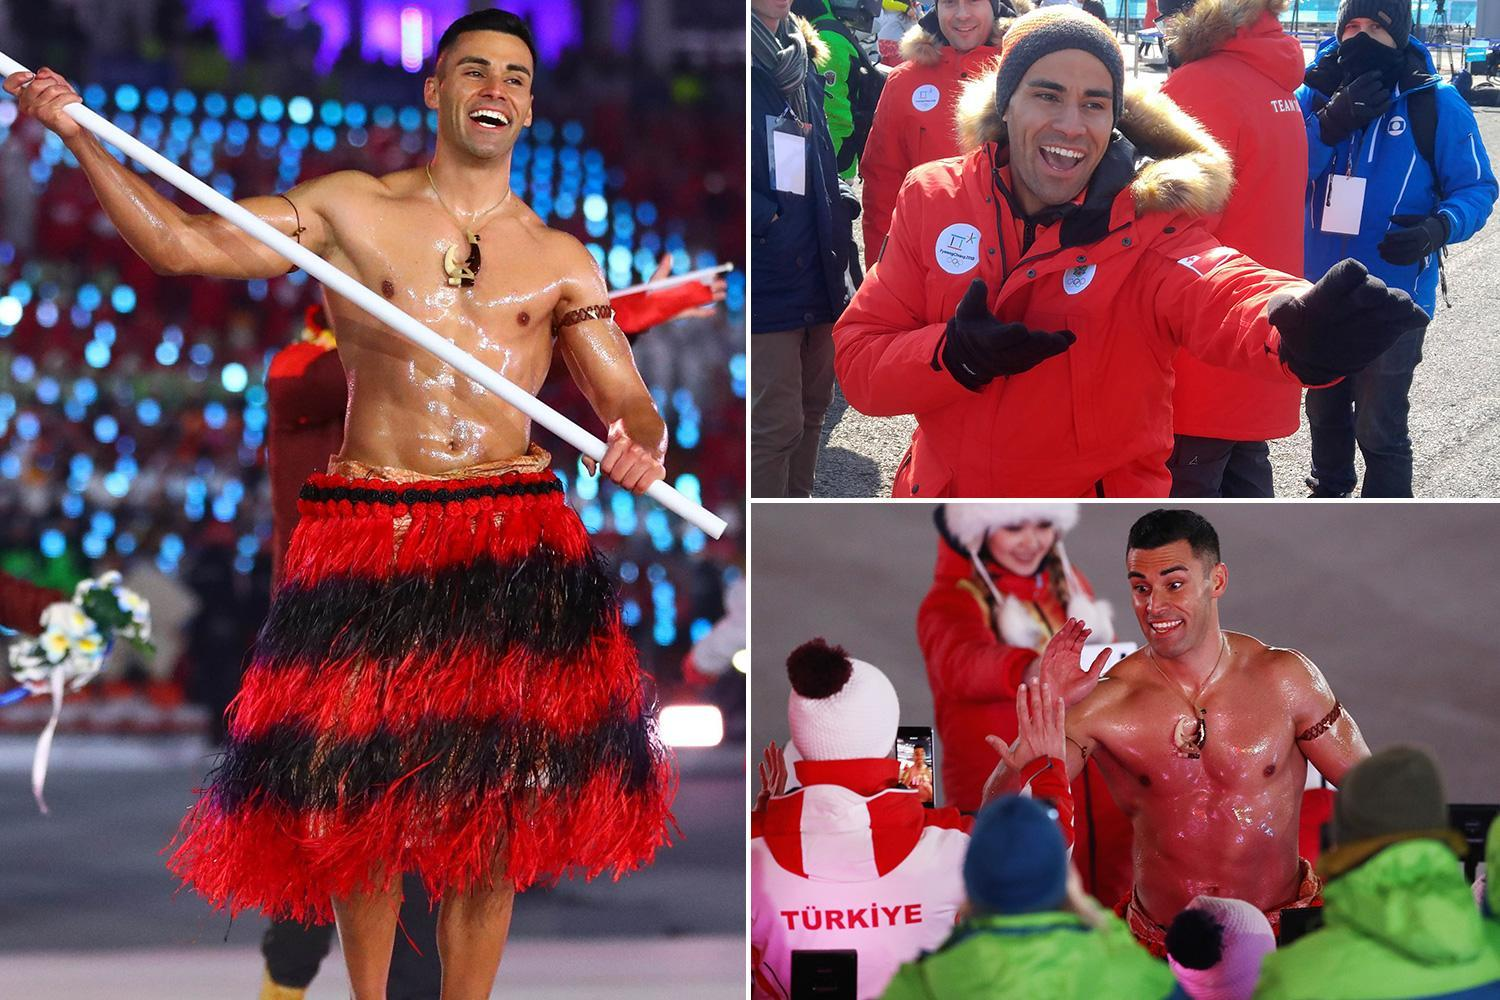 Tonga sensation Patu Taufatofua jokes the world should 'get stronger internet' after his oiled-up, topless opening ceremony appearance 'broke' it